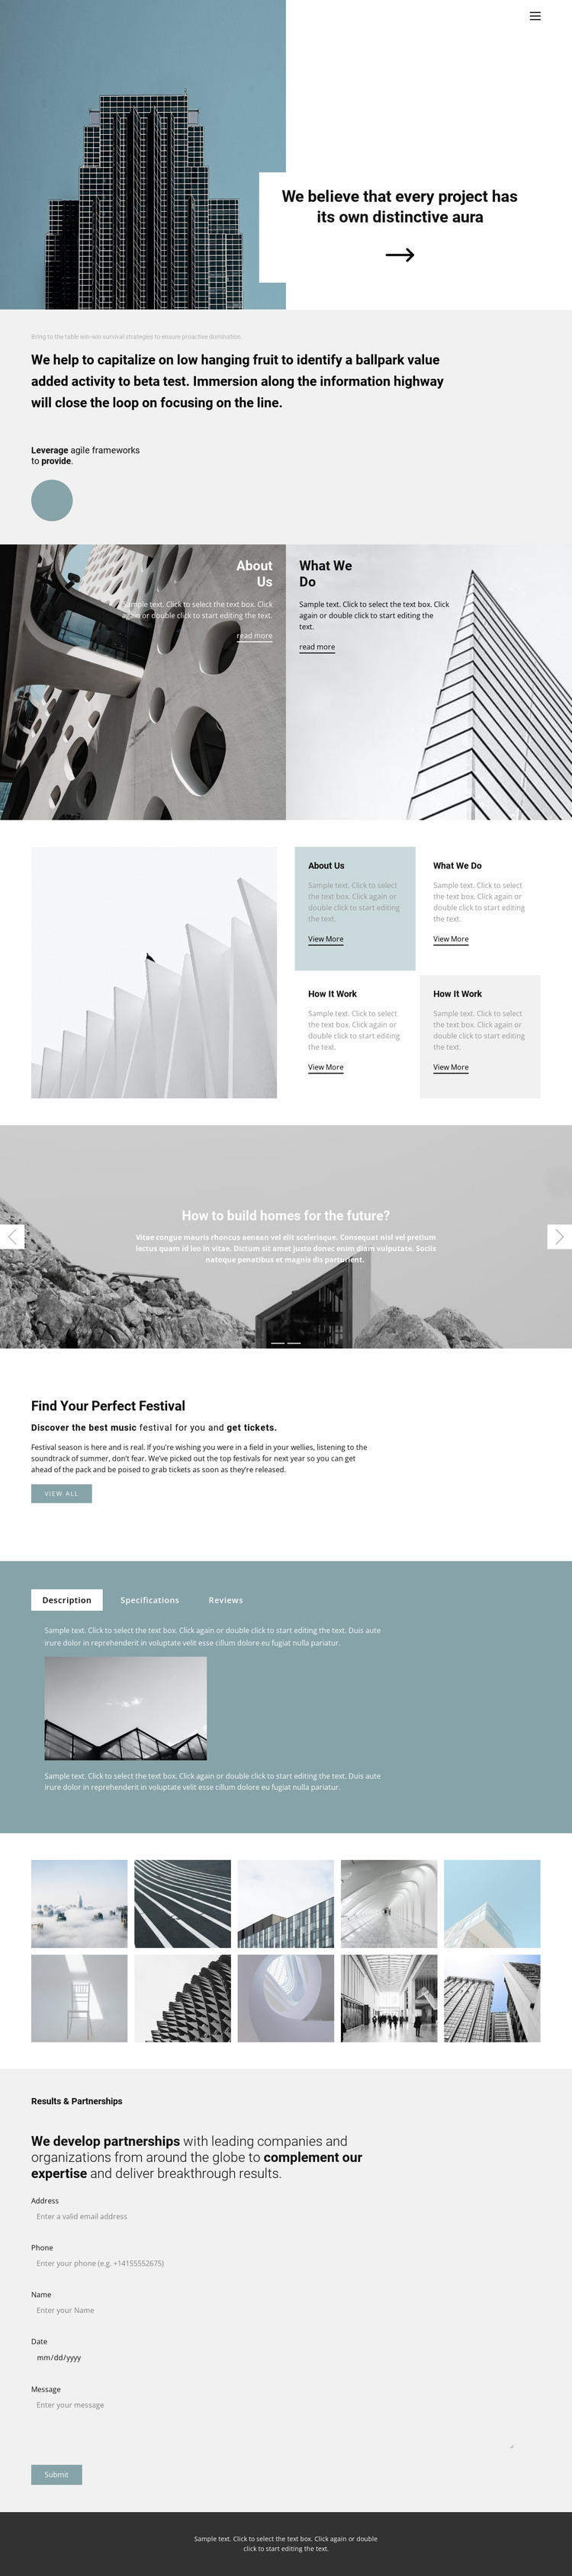 Choose an office for yourself HTML Template